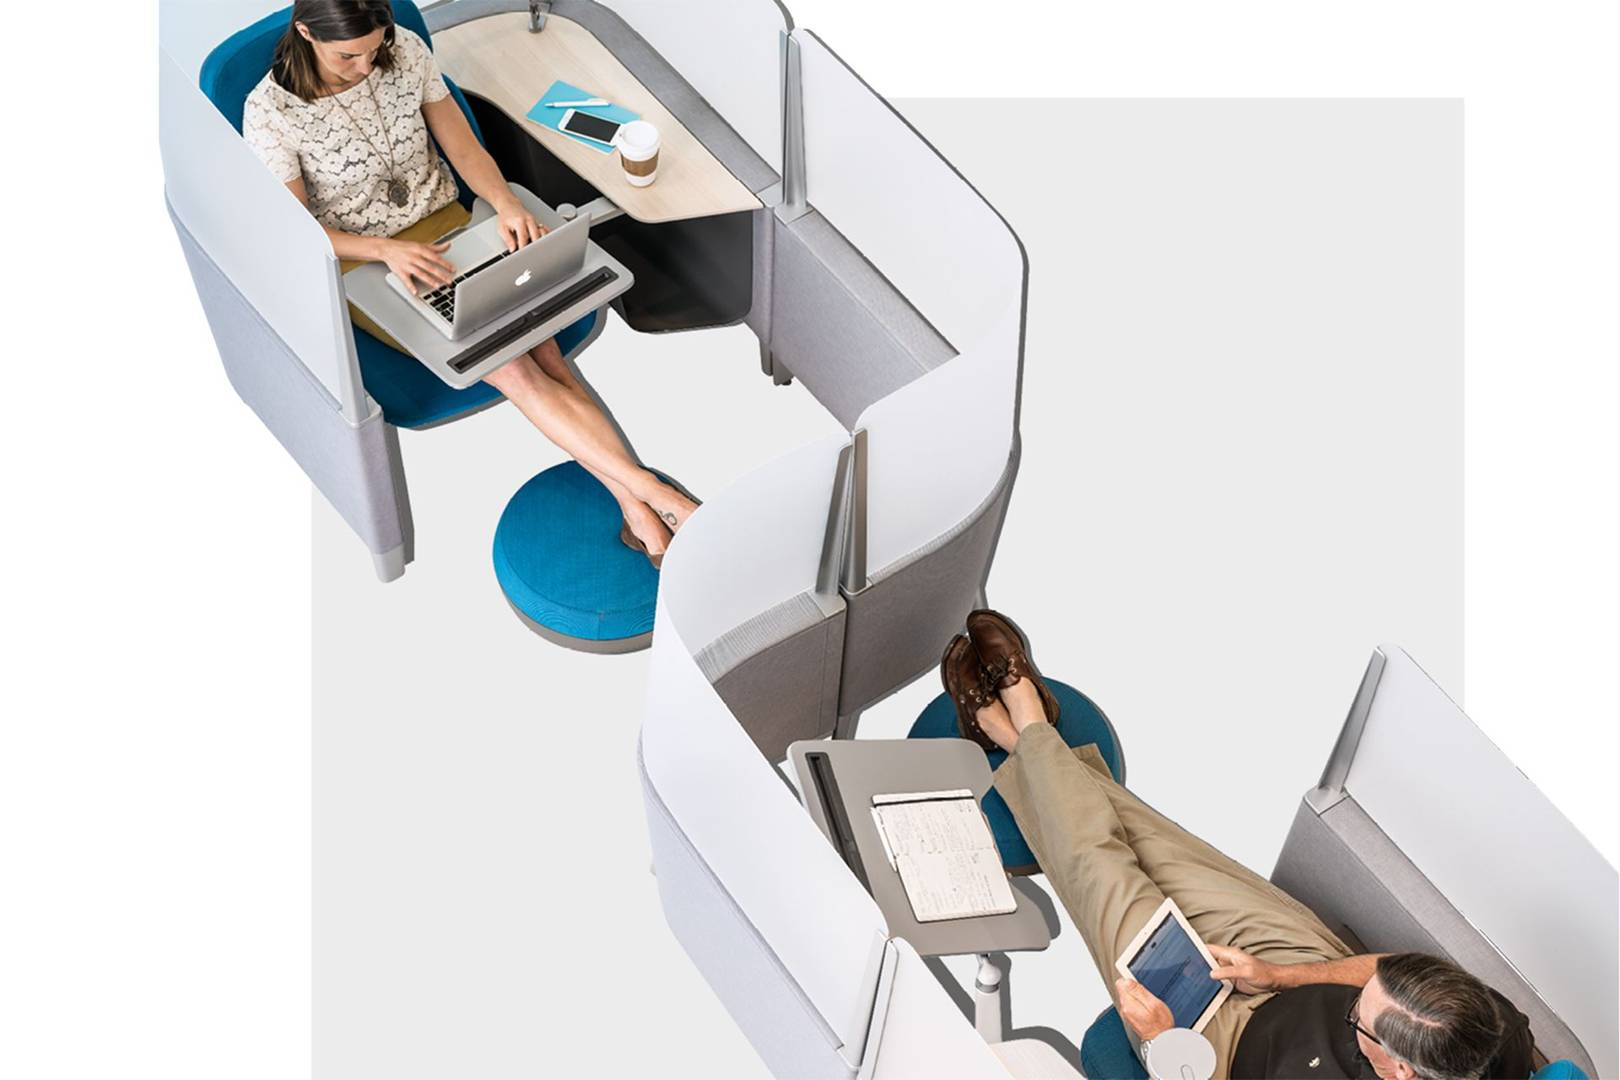 behind the scenes at steelcase the company designing the future of